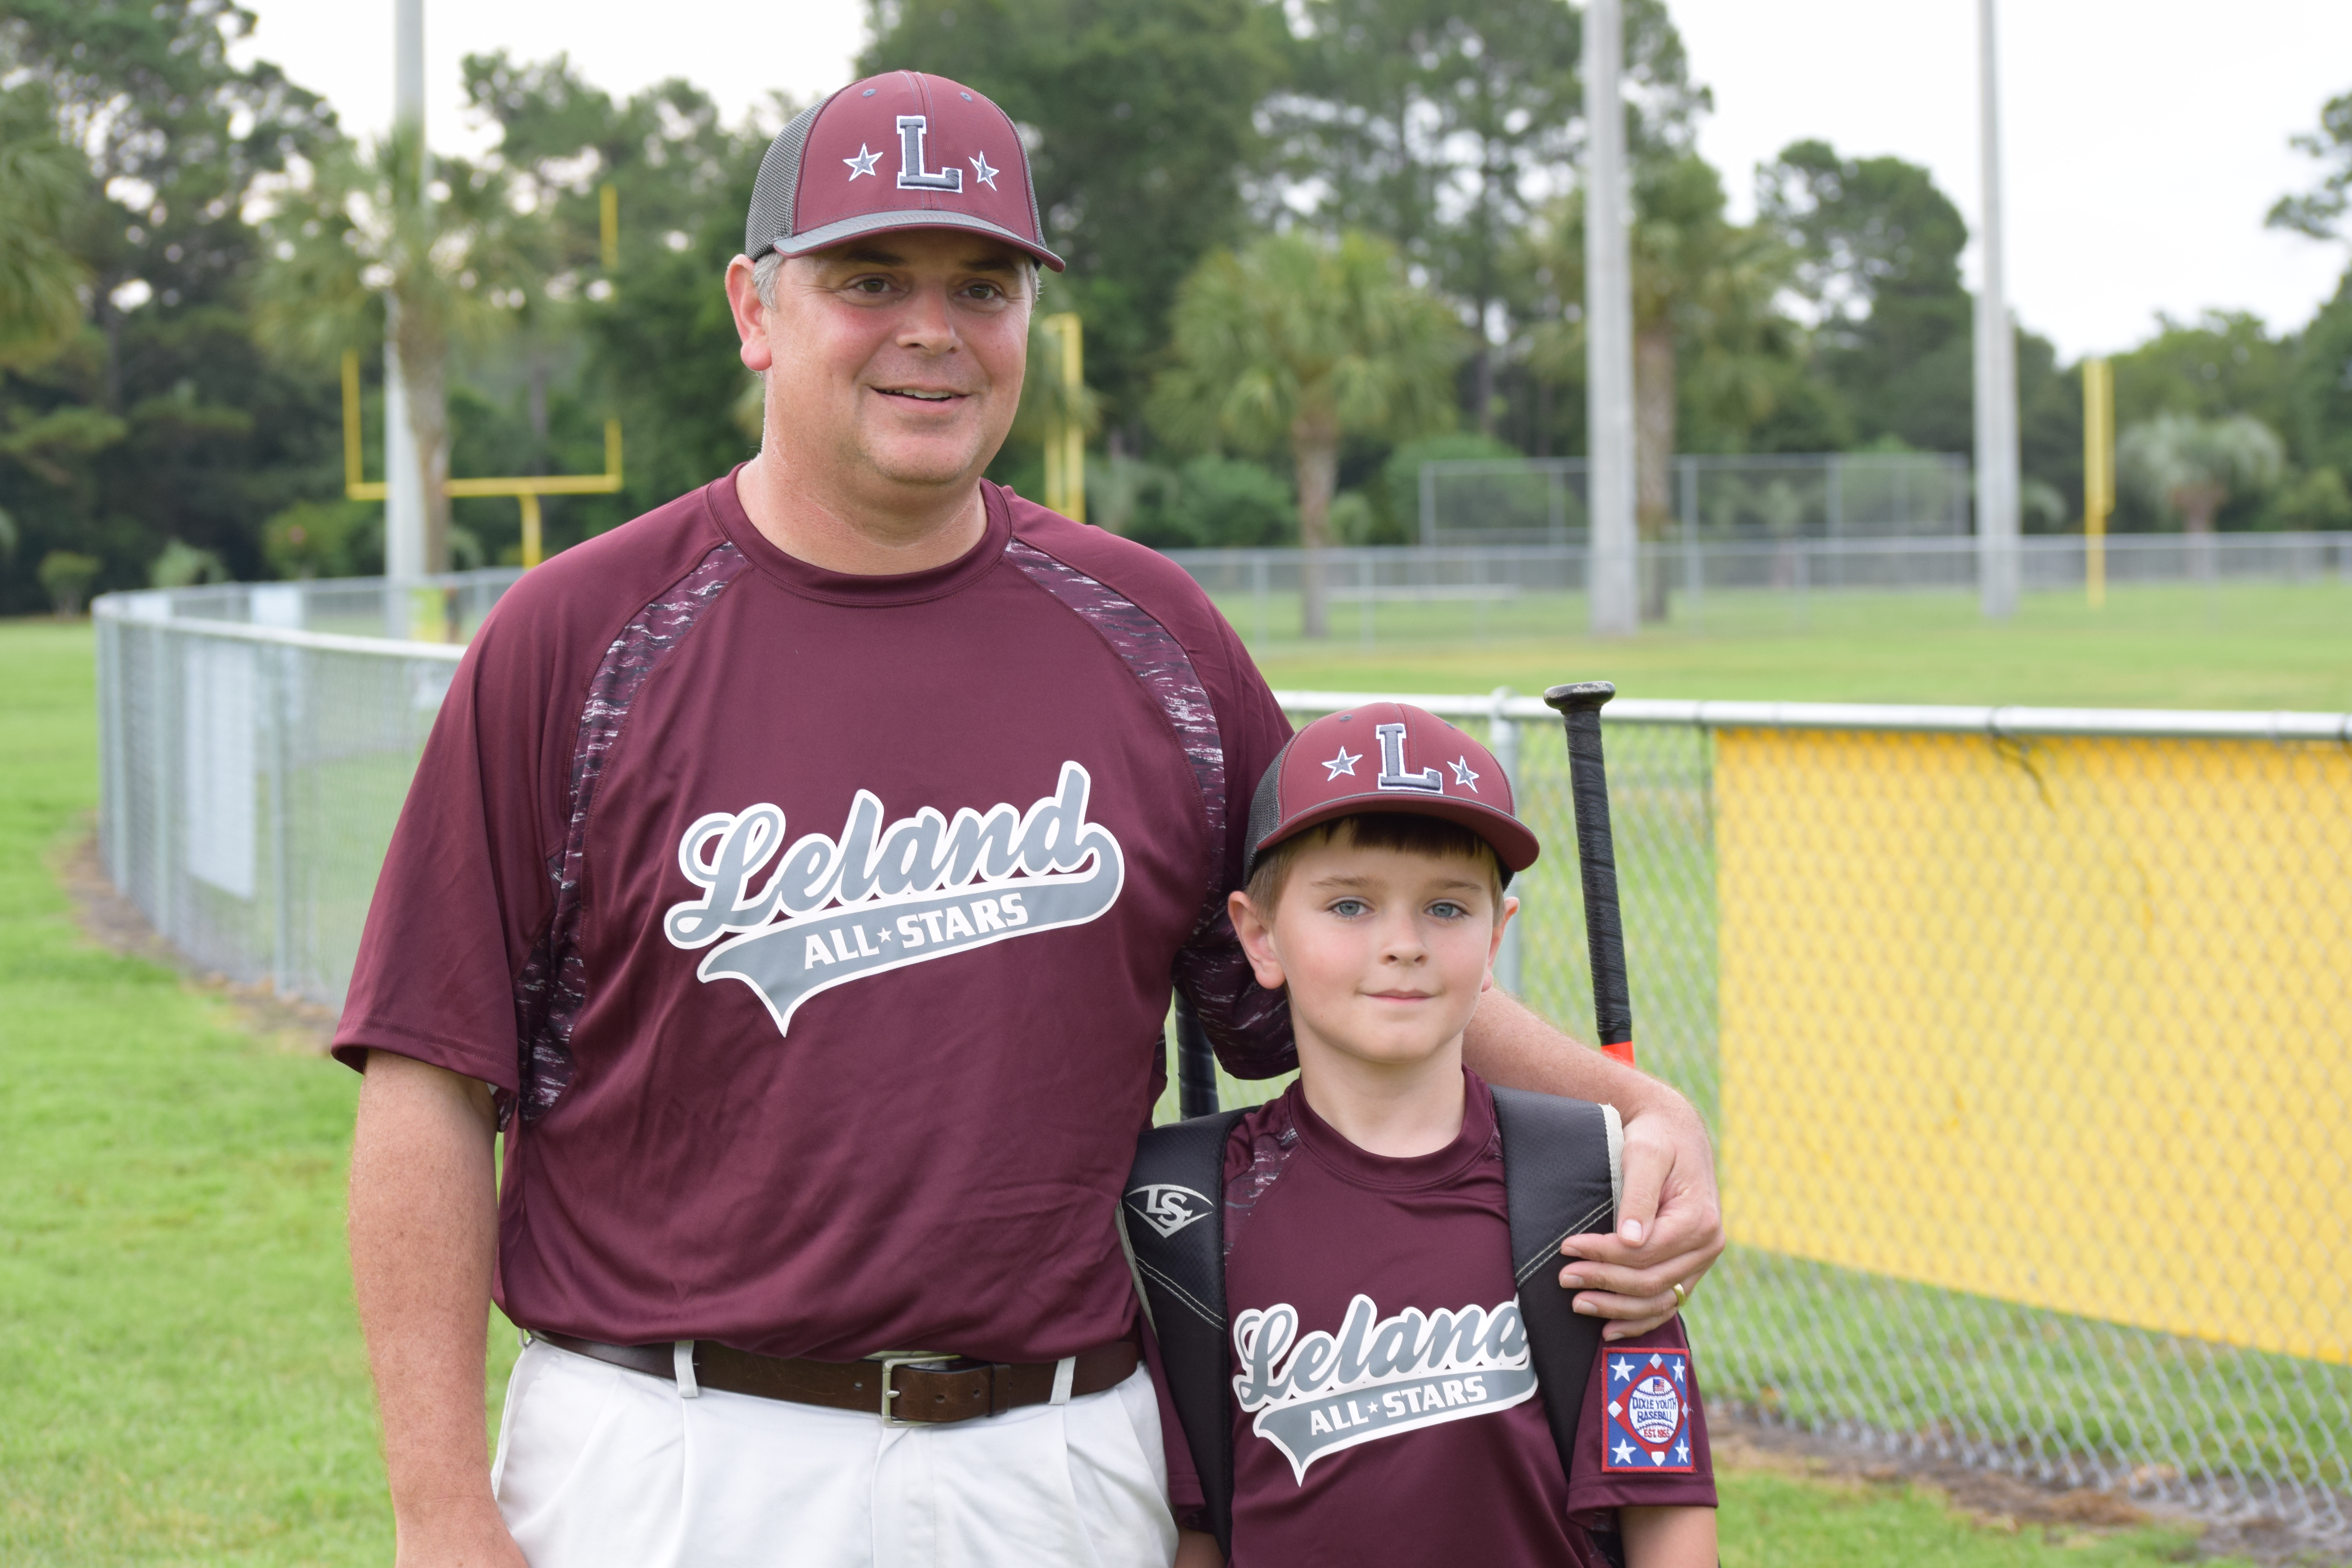 Trexler - Leland dads who coach